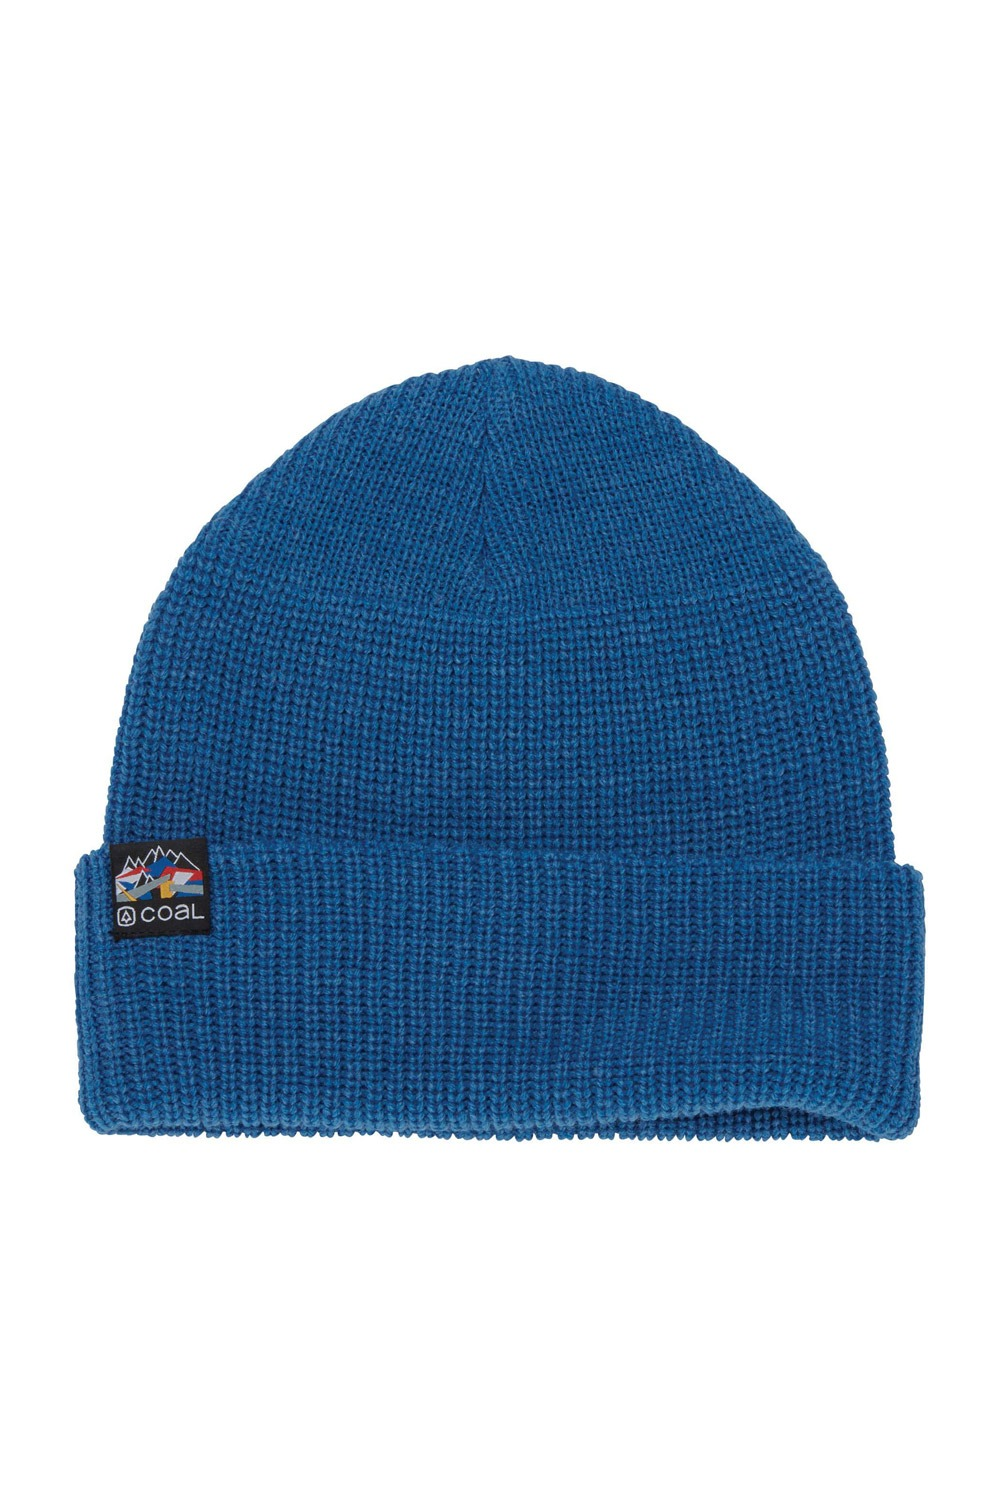 2021 콜 스쿼드 숏비니 모자  COAL THE SQUAD BEANIE_BLU (BLUE)_DICA002BU